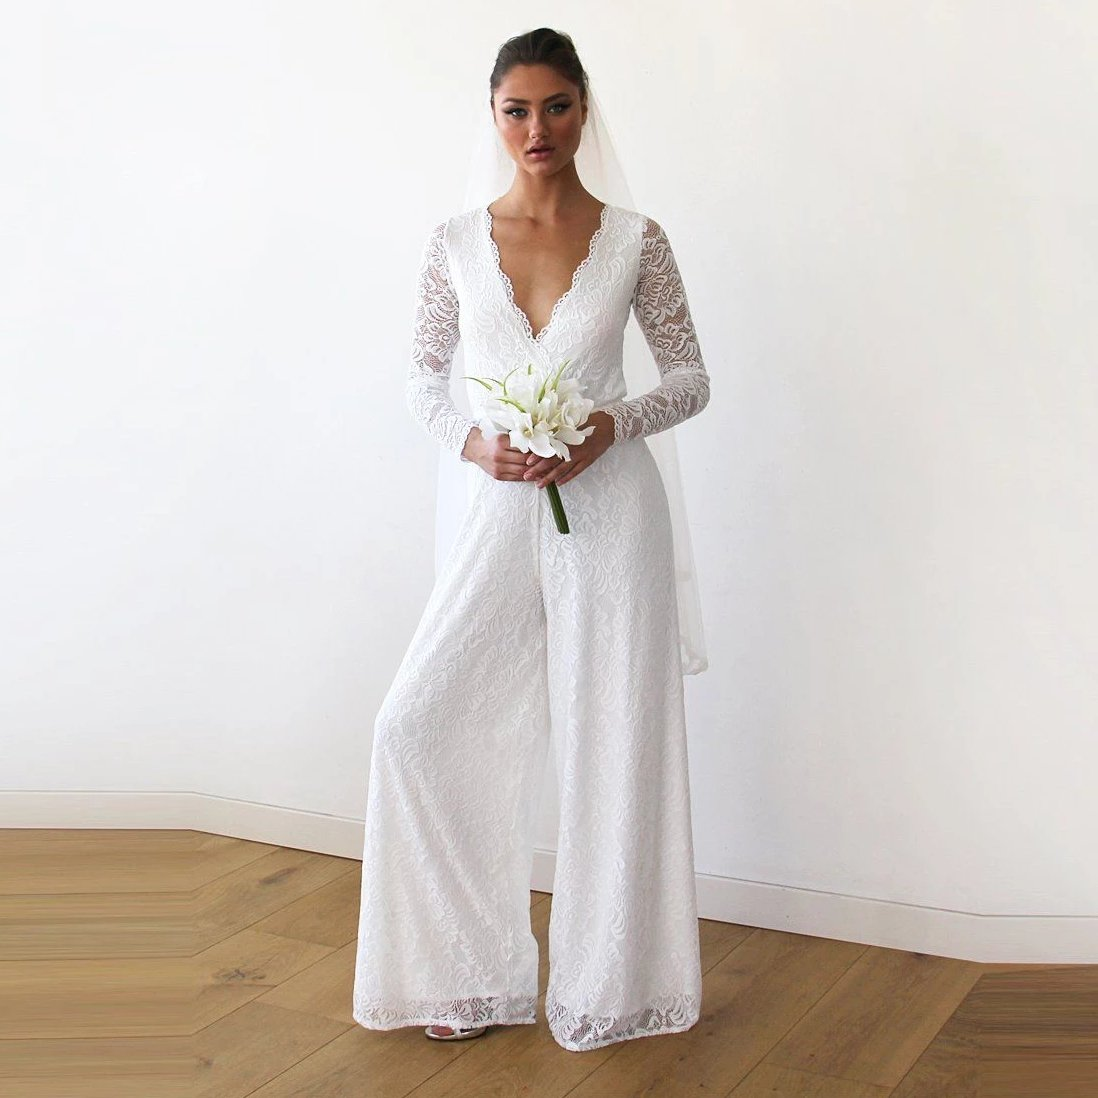 Ivory Long Sleeves Wedding Lace Jumpsuit 1169 - Blushfashion